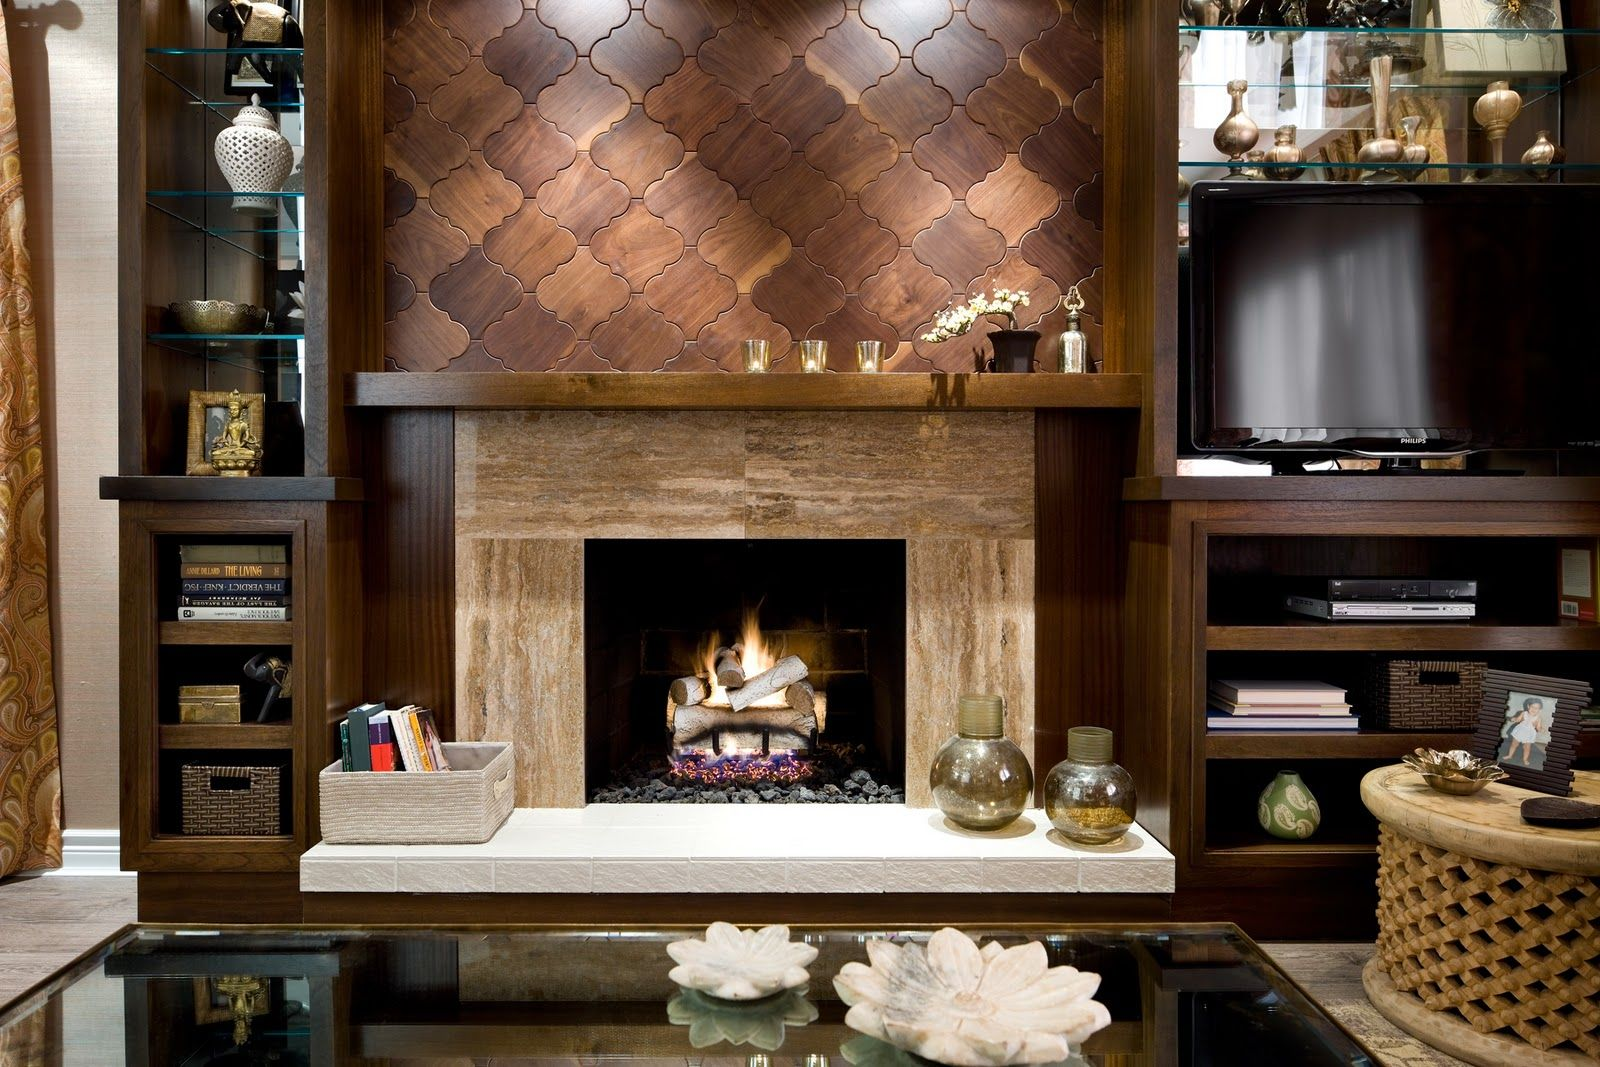 Candice olson fireplace designs ceramic tiles that look like wood candice olson fireplace designs ceramic tiles that look like wood dailygadgetfo Choice Image